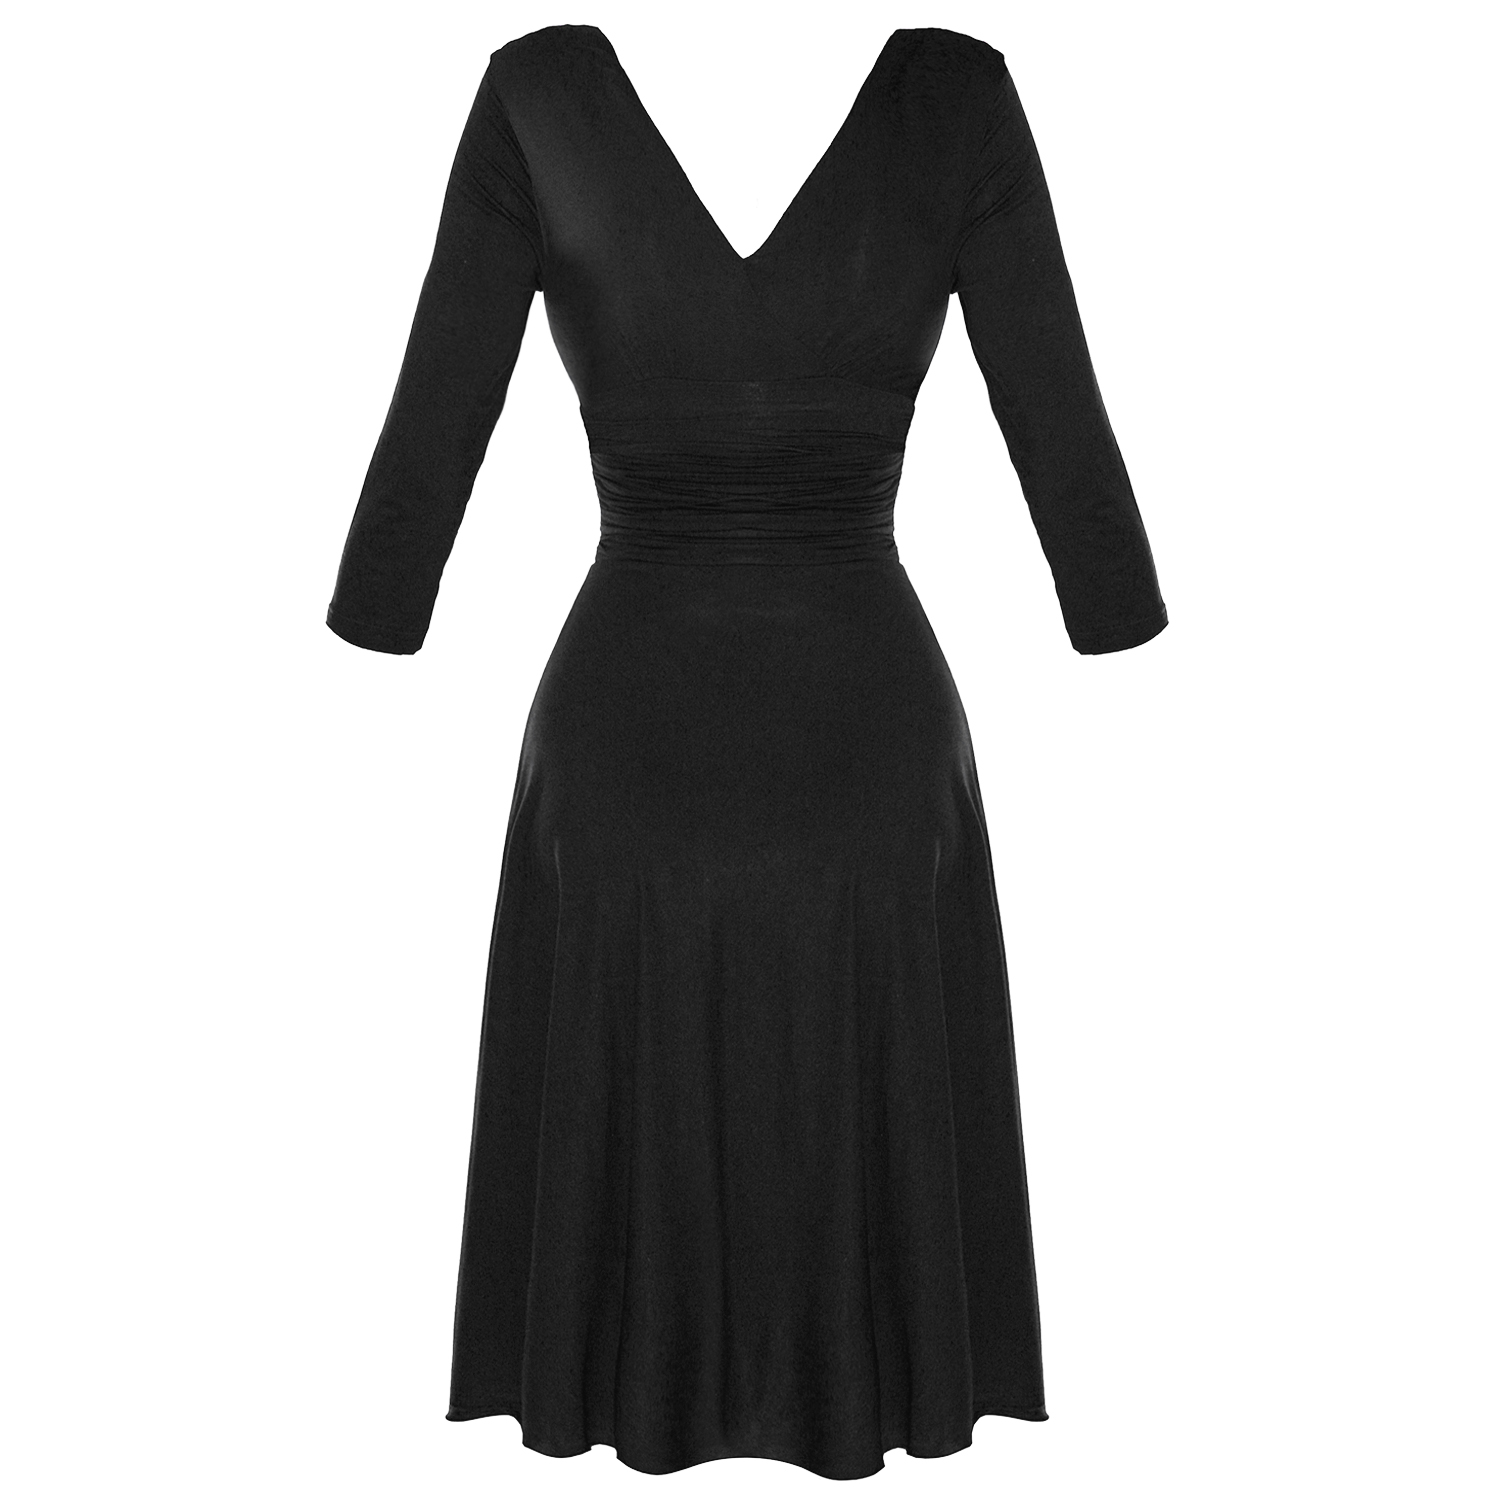 LADIES-NEW-BLACK-LONG-SLEEVE-WRAP-50S-VINTAGE-STYLE-CAREER-EVENING-PARTY-DRESS